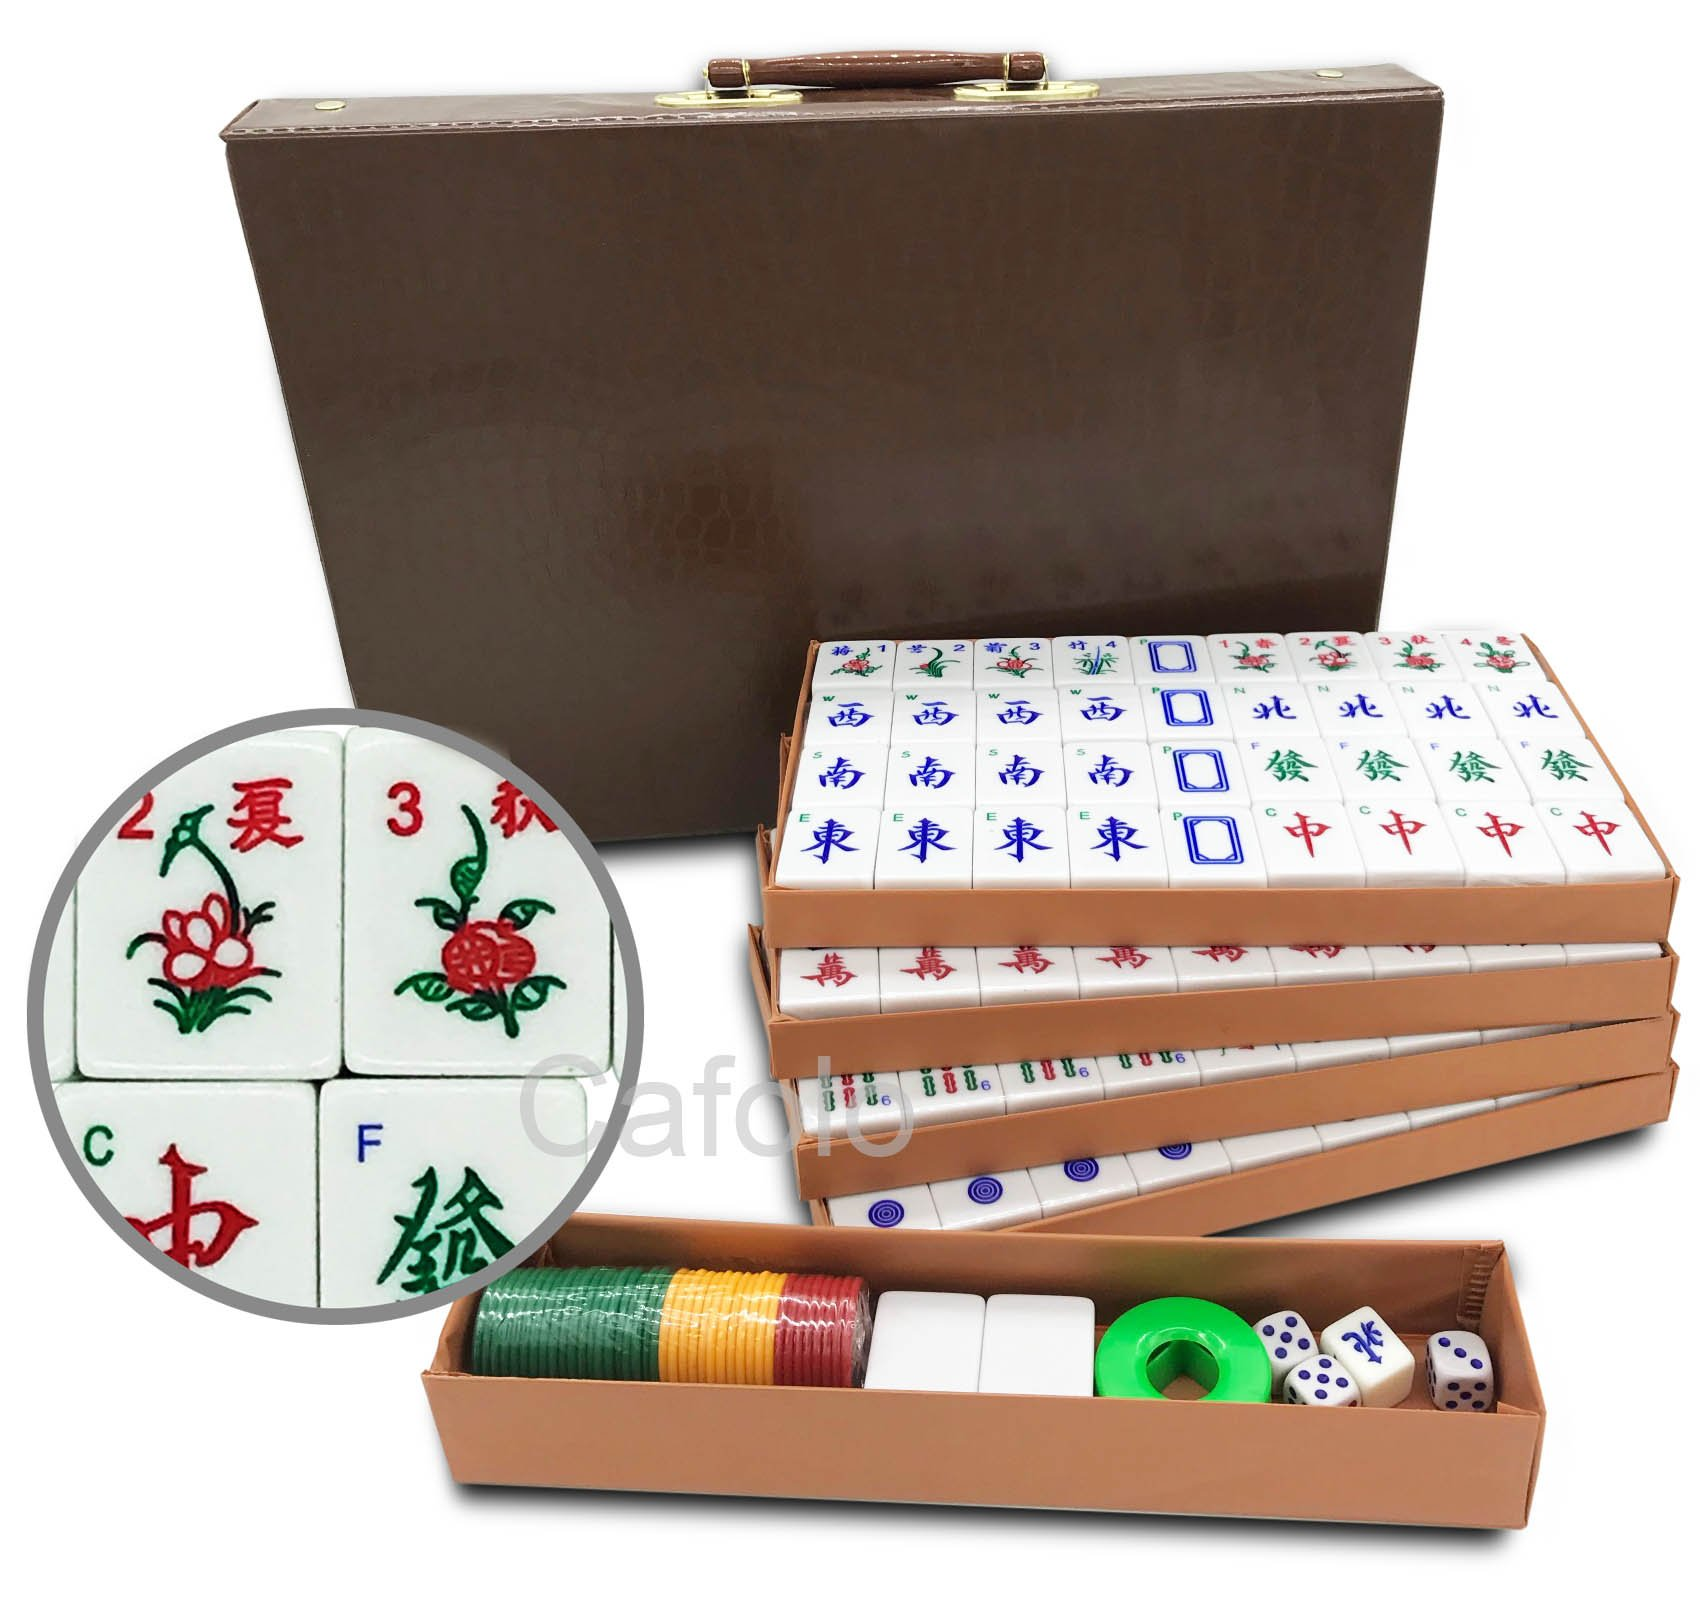 Mose Cafolo Chinese Mahjong X-Large 144 Numbered Melamine Tiles 1.5'' Large Tile with Carrying Travel Case Pro Complete Mahjong Game Set - (Mah Jong, Mahjongg, Mah-Jongg, Mah Jongg, Majiang) by Mose Cafolo